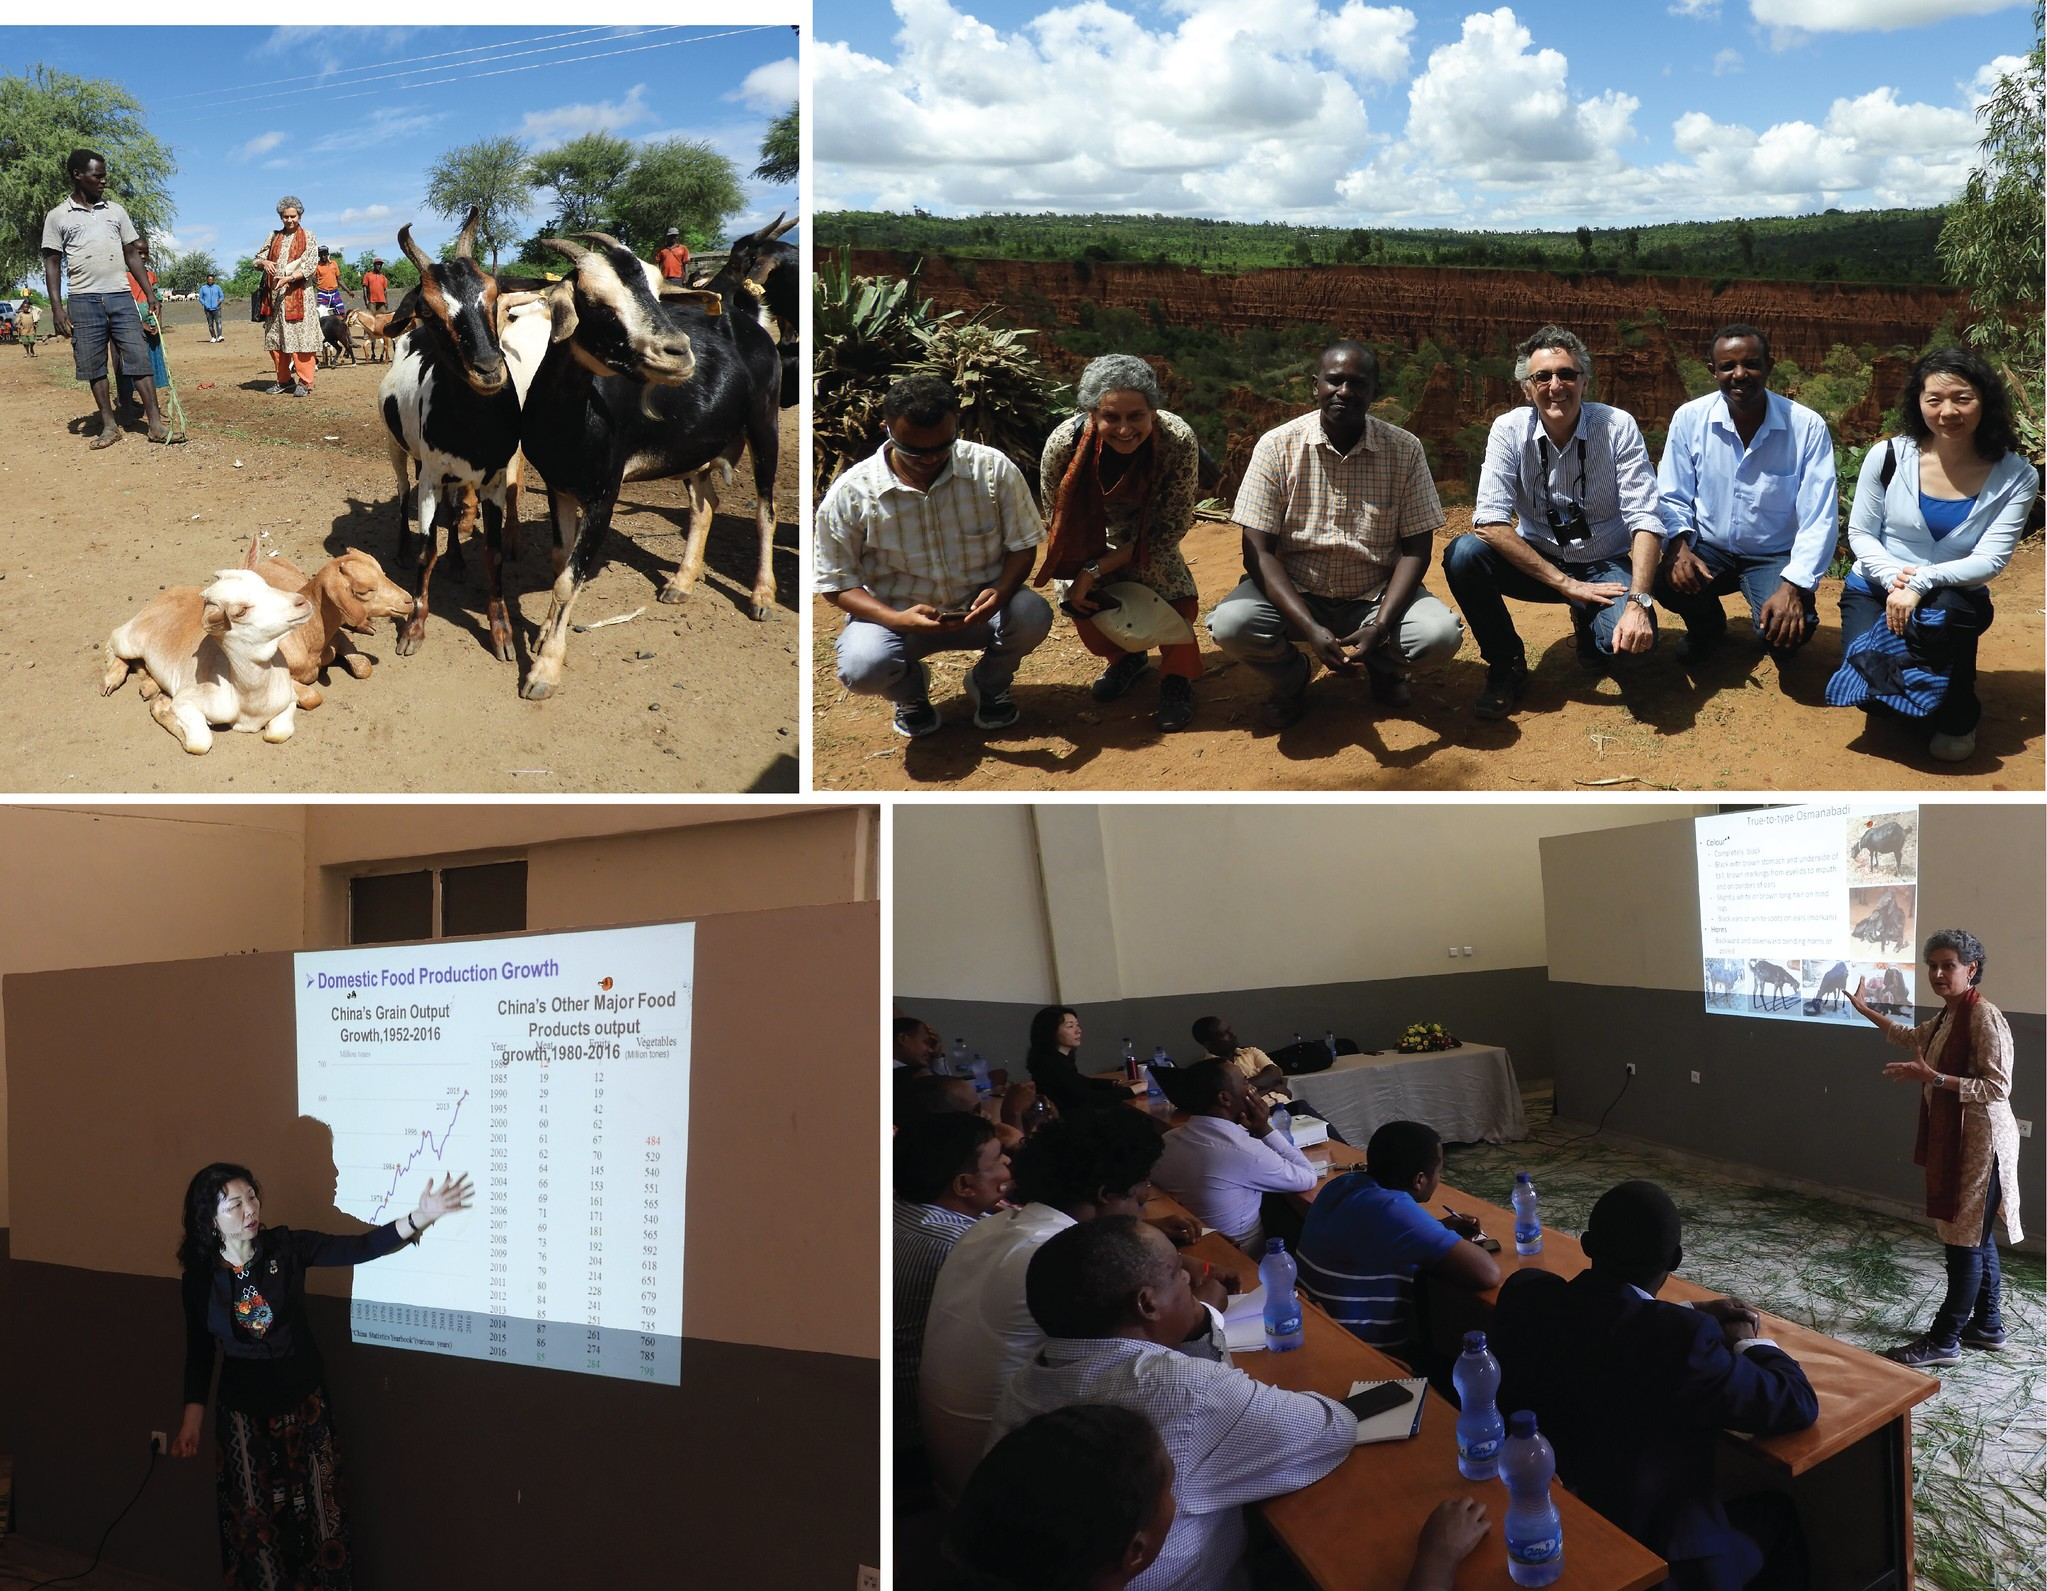 ILRI Board Members visit to southern Ethiopia - 11 May 2019